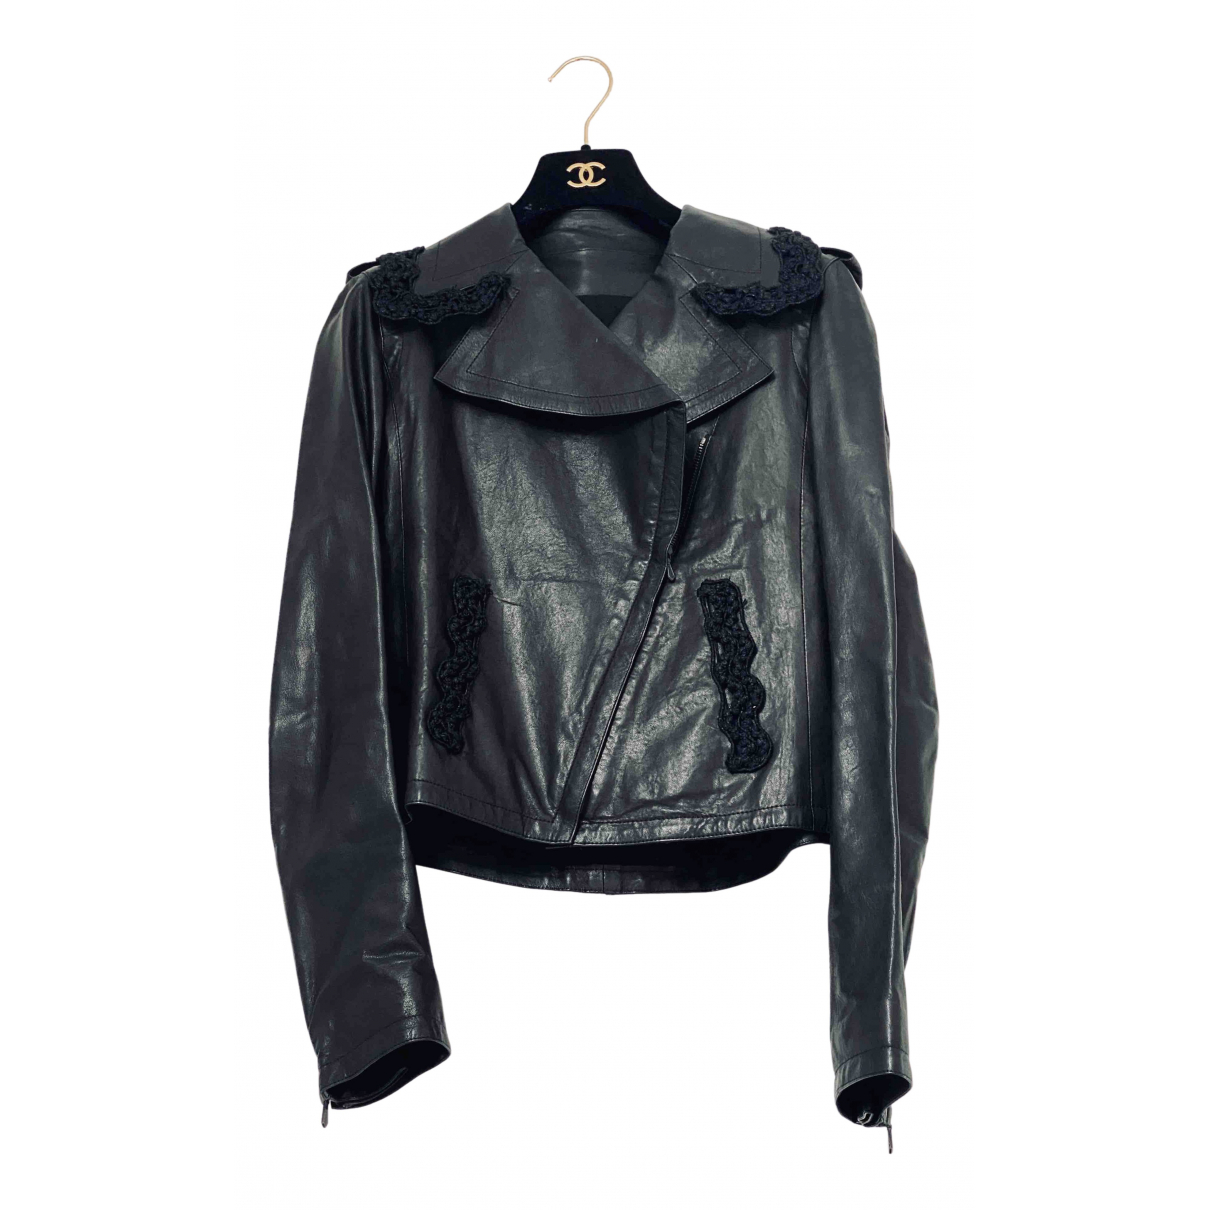 Chanel \N Black Leather jacket for Women 34 FR